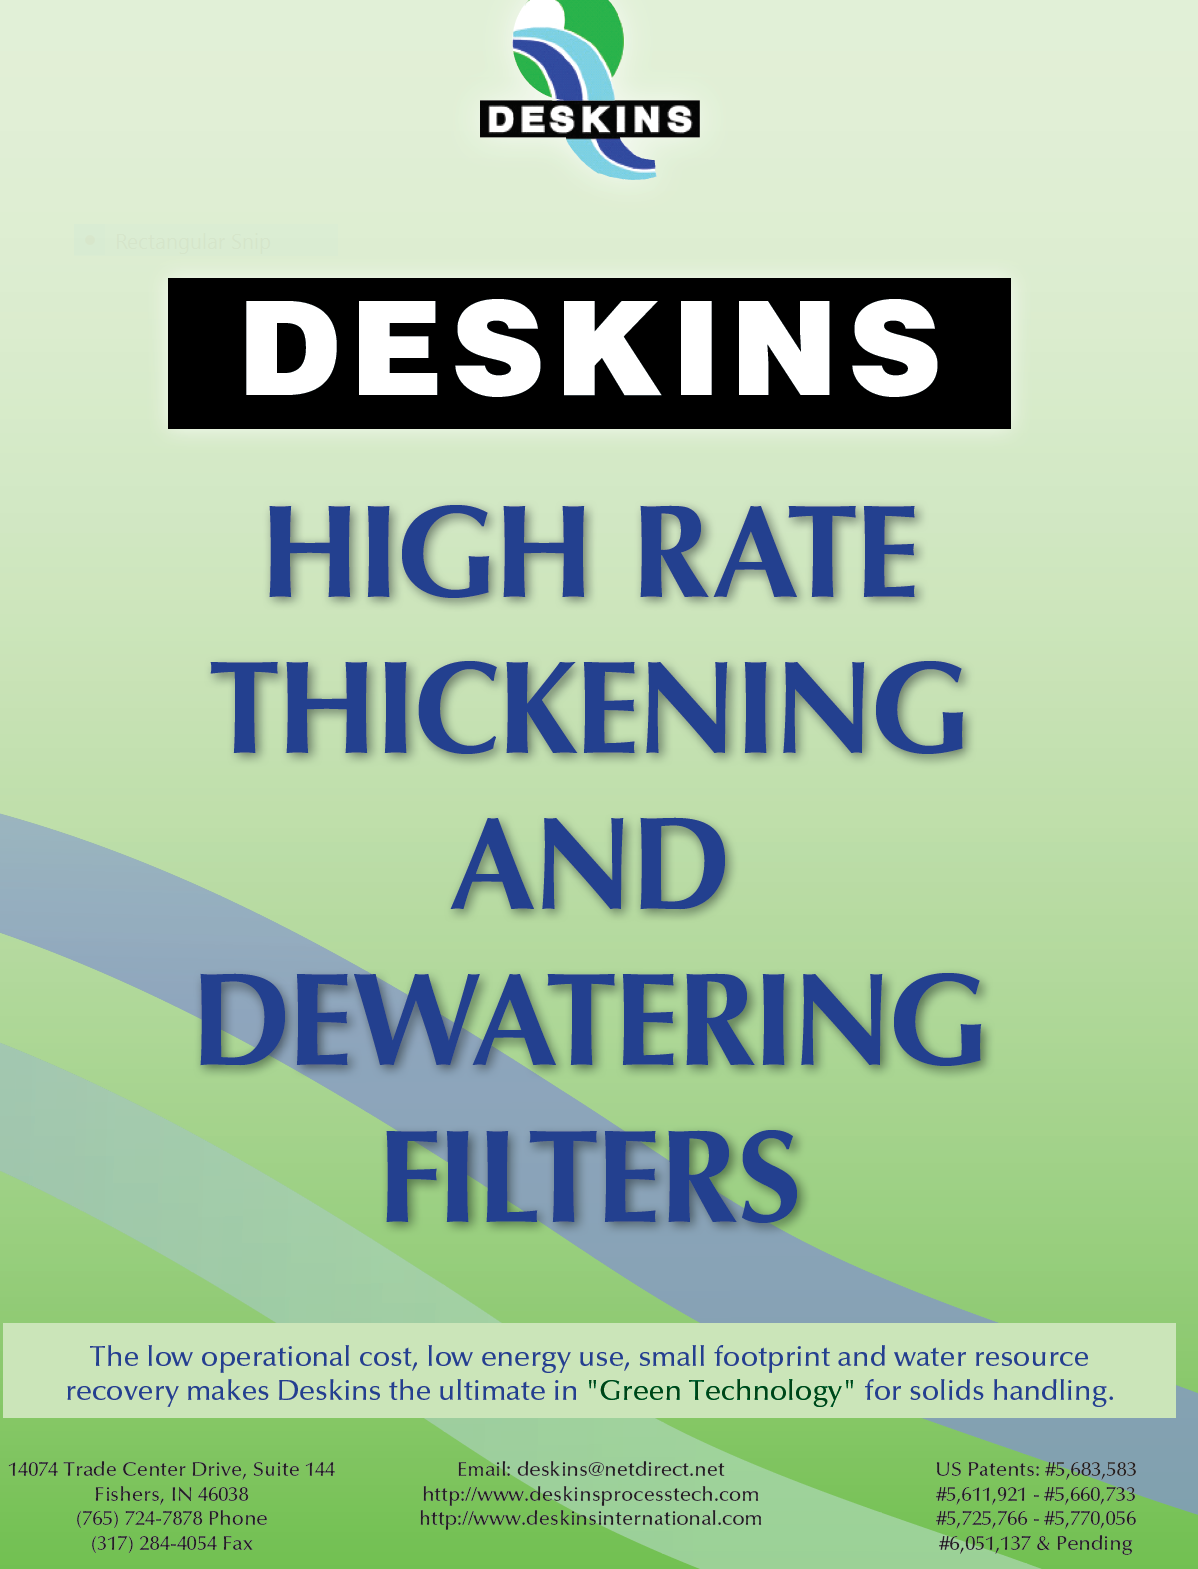 Click on image to download and learn about our high rate thickening and dewatering filters. Great for backwash water recovery and a powerful tool in recuperating biosolids!